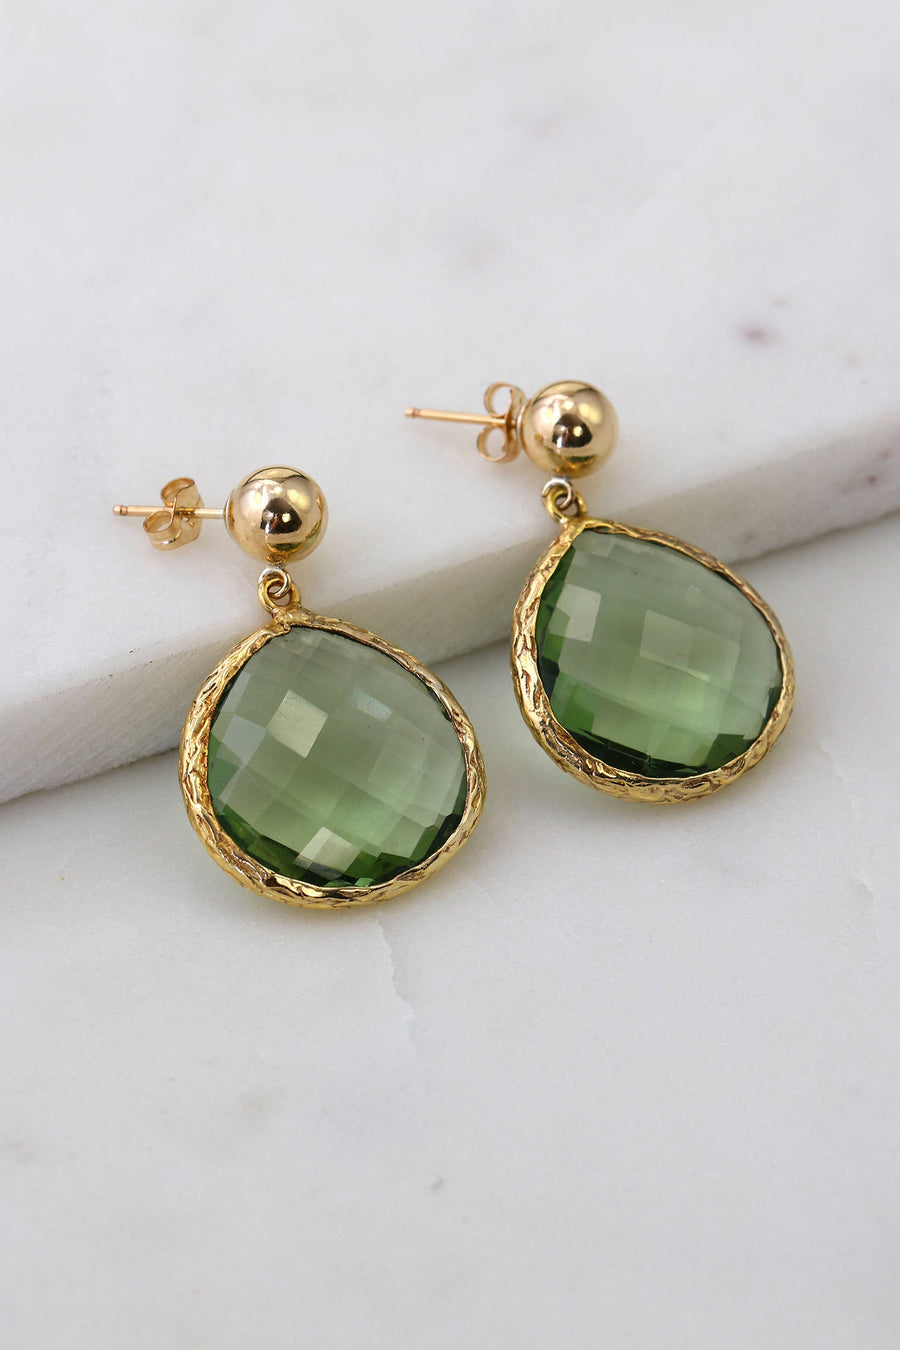 Pear Shape Earring, Gemstone Earring, Green Amethyst, Natural Stone, Elegant Textured Earrings, Gold filled earring, Round post, Bar post